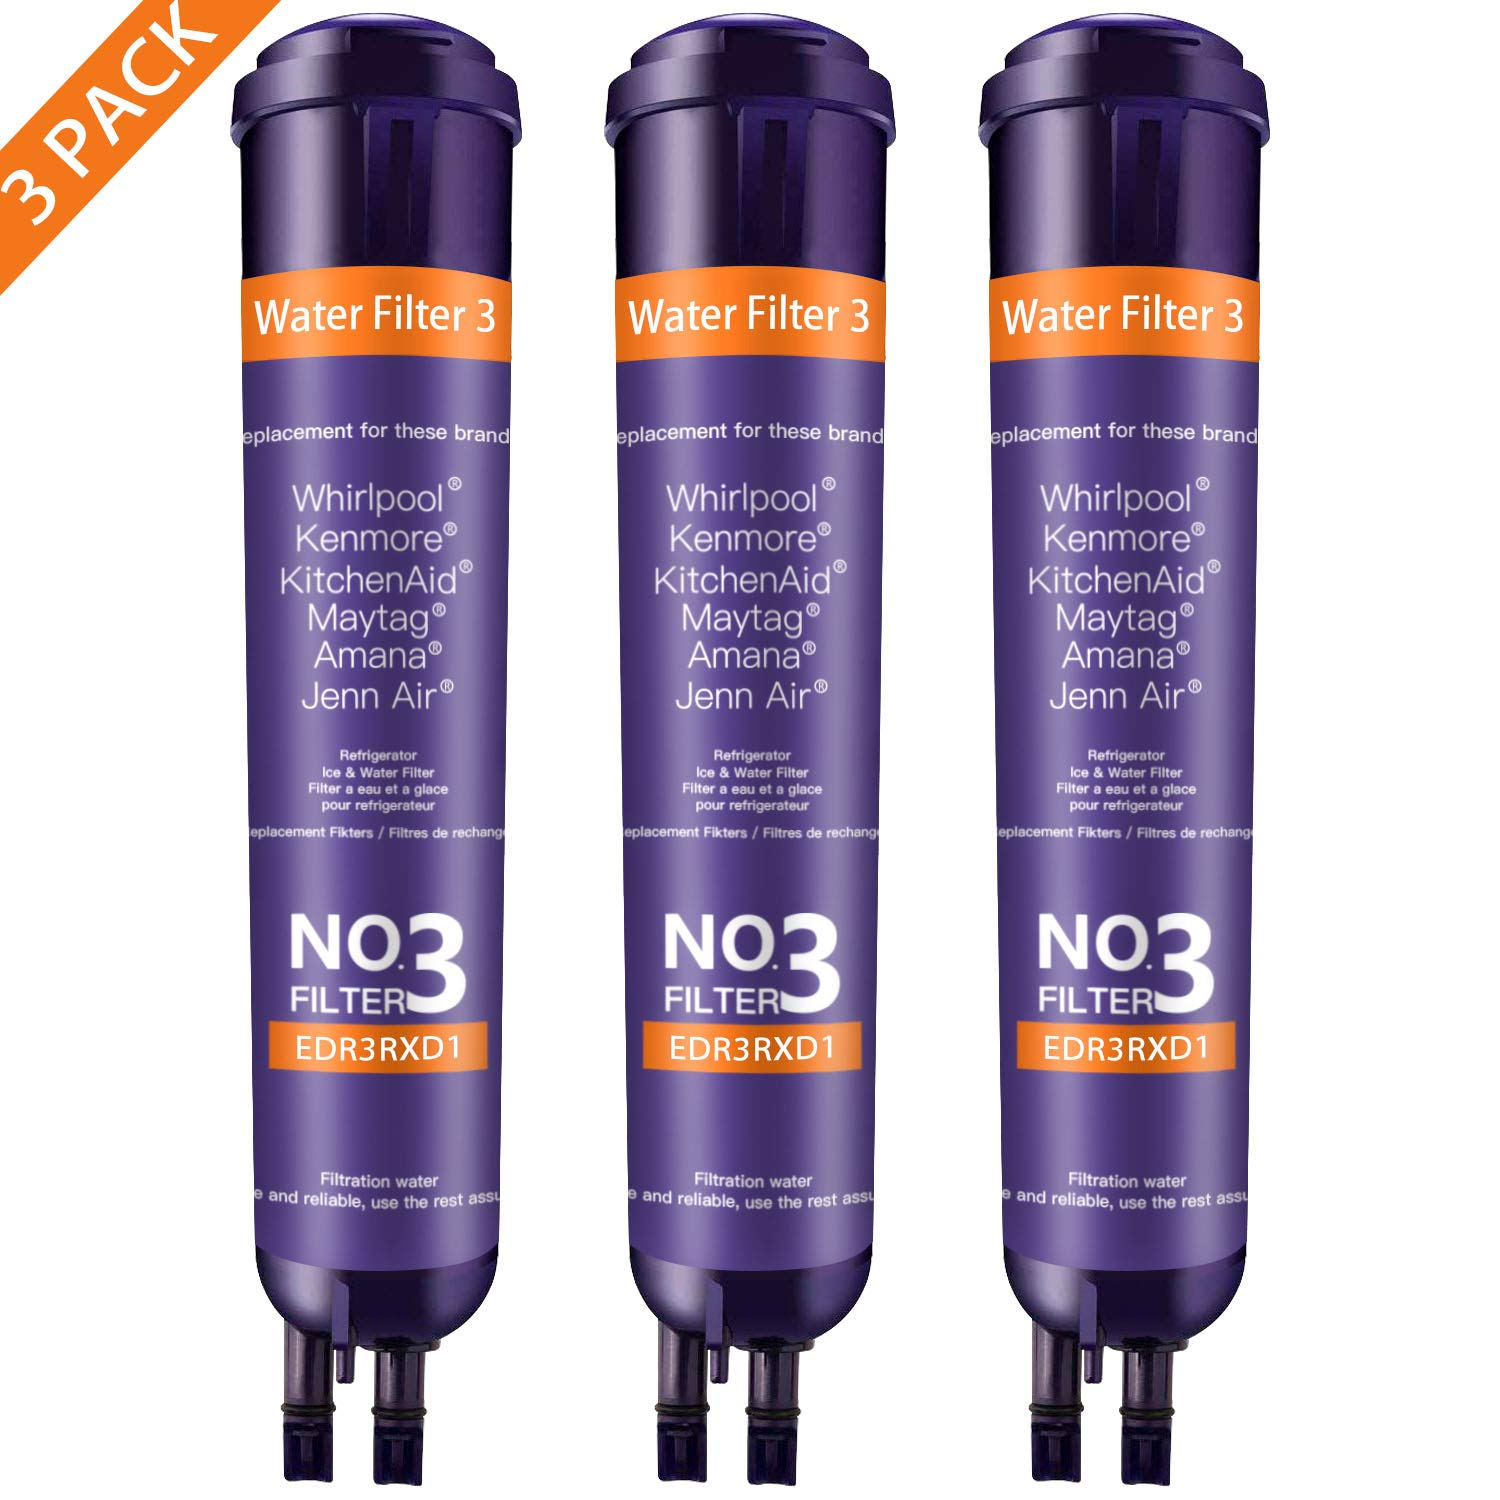 W10413645 W10413645a EDR2RXD1 els 4396841 w10413645A water filter 2